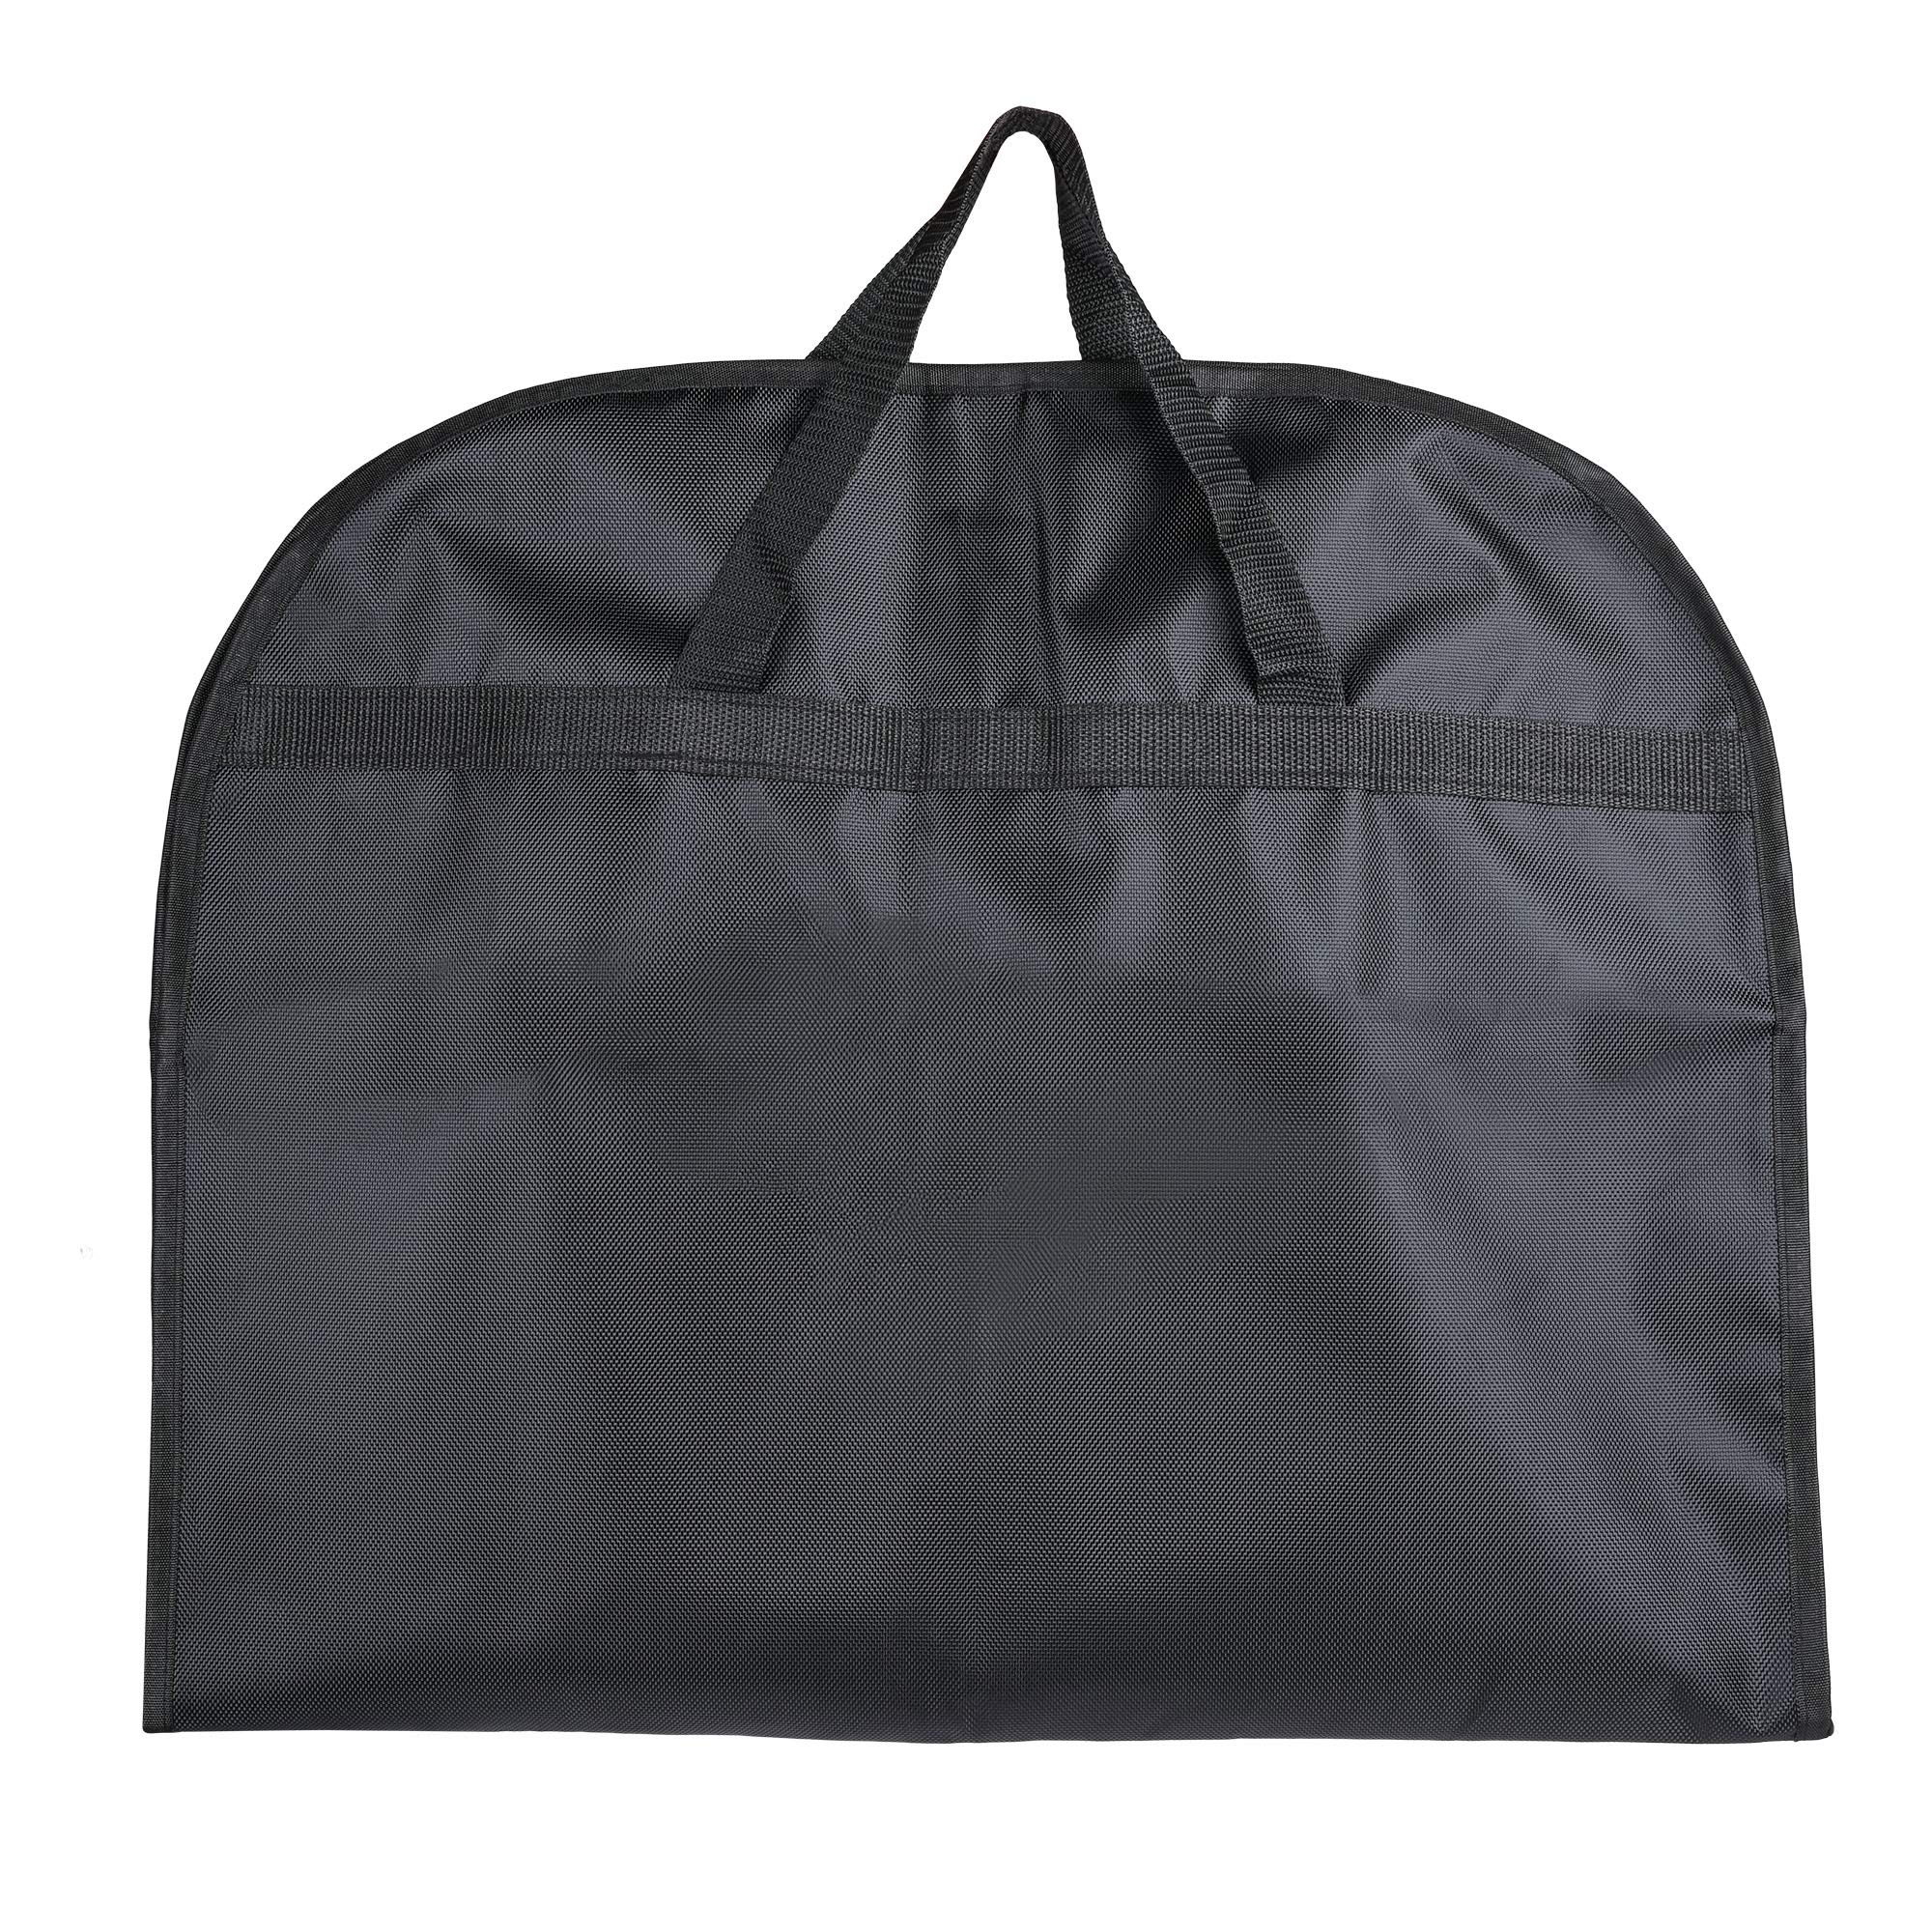 COSMOS Suit & Dress Travel Storage Garment Bag Carry Bag with Handles, 39 x 23 inches